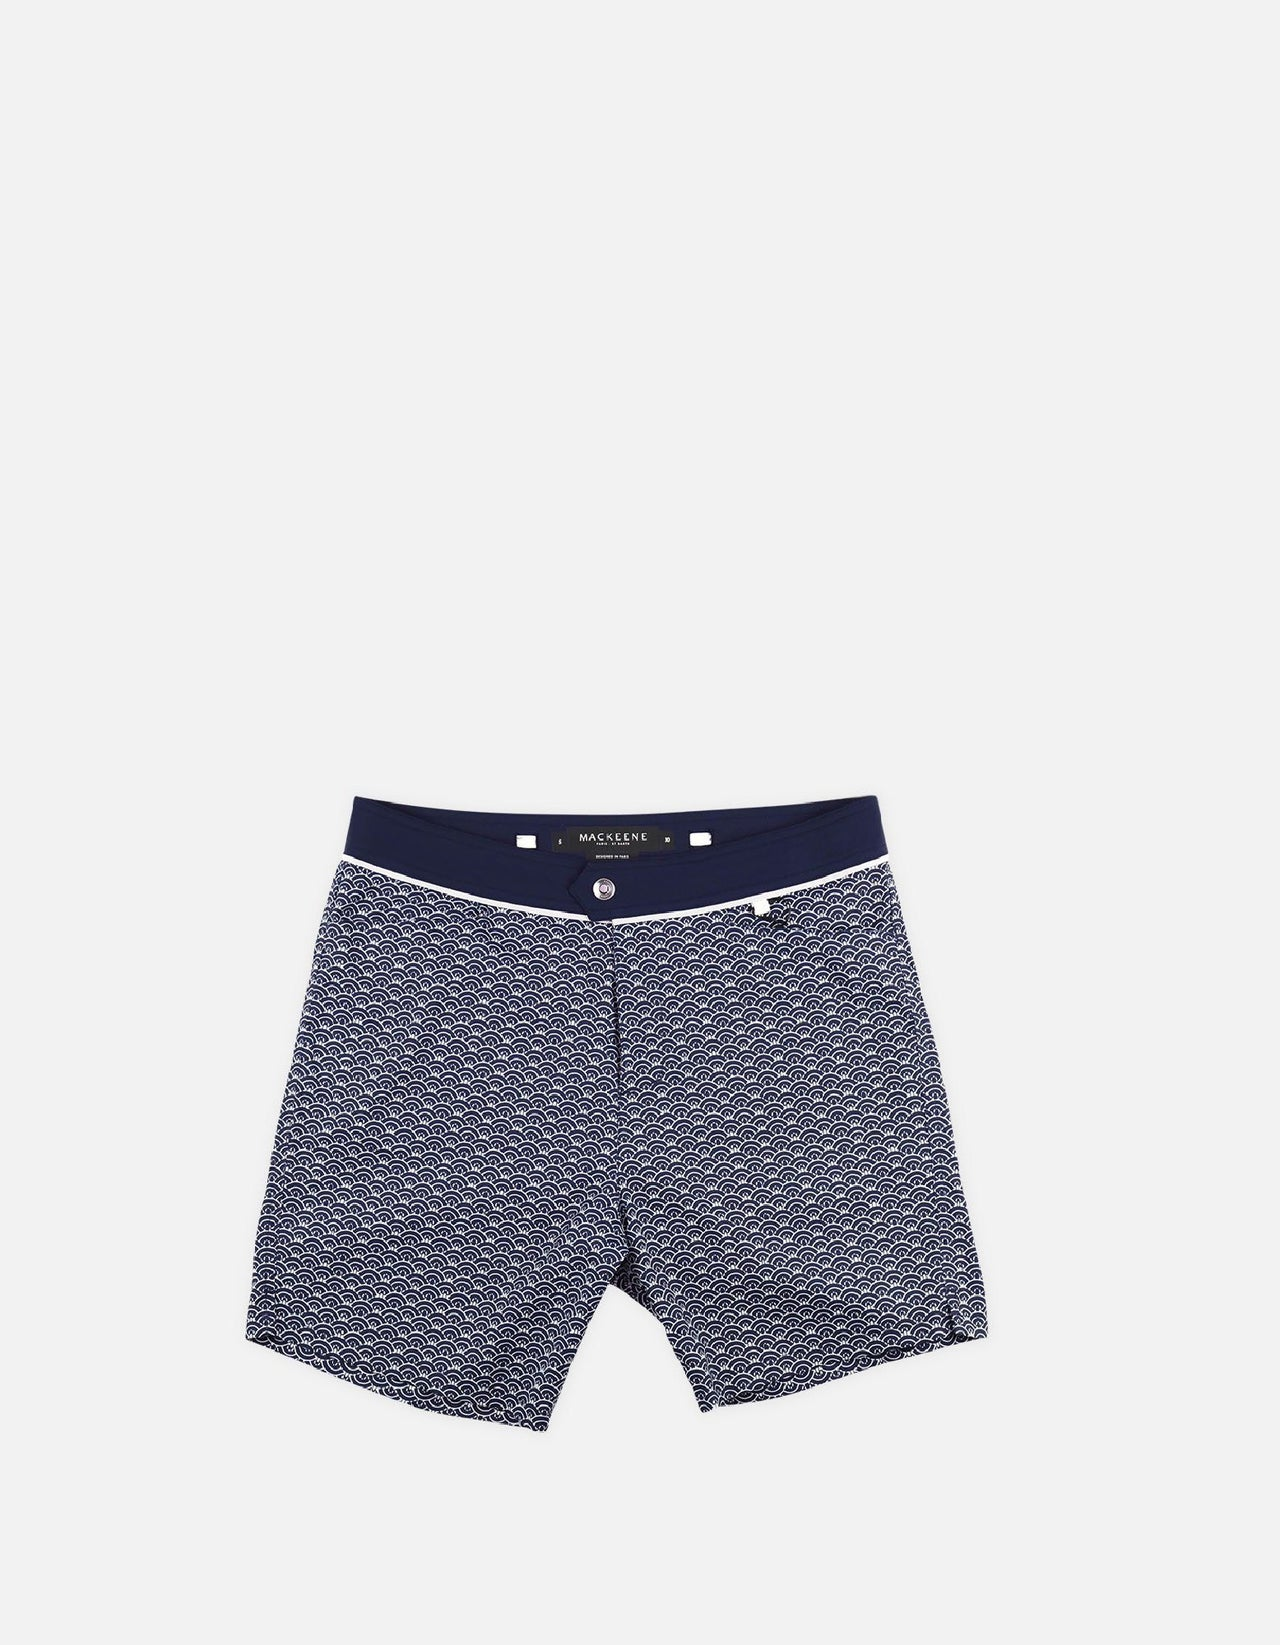 Barth4 - P06. Petrol Scales & Navy Swim Shorts - Barth4 MACKEENE